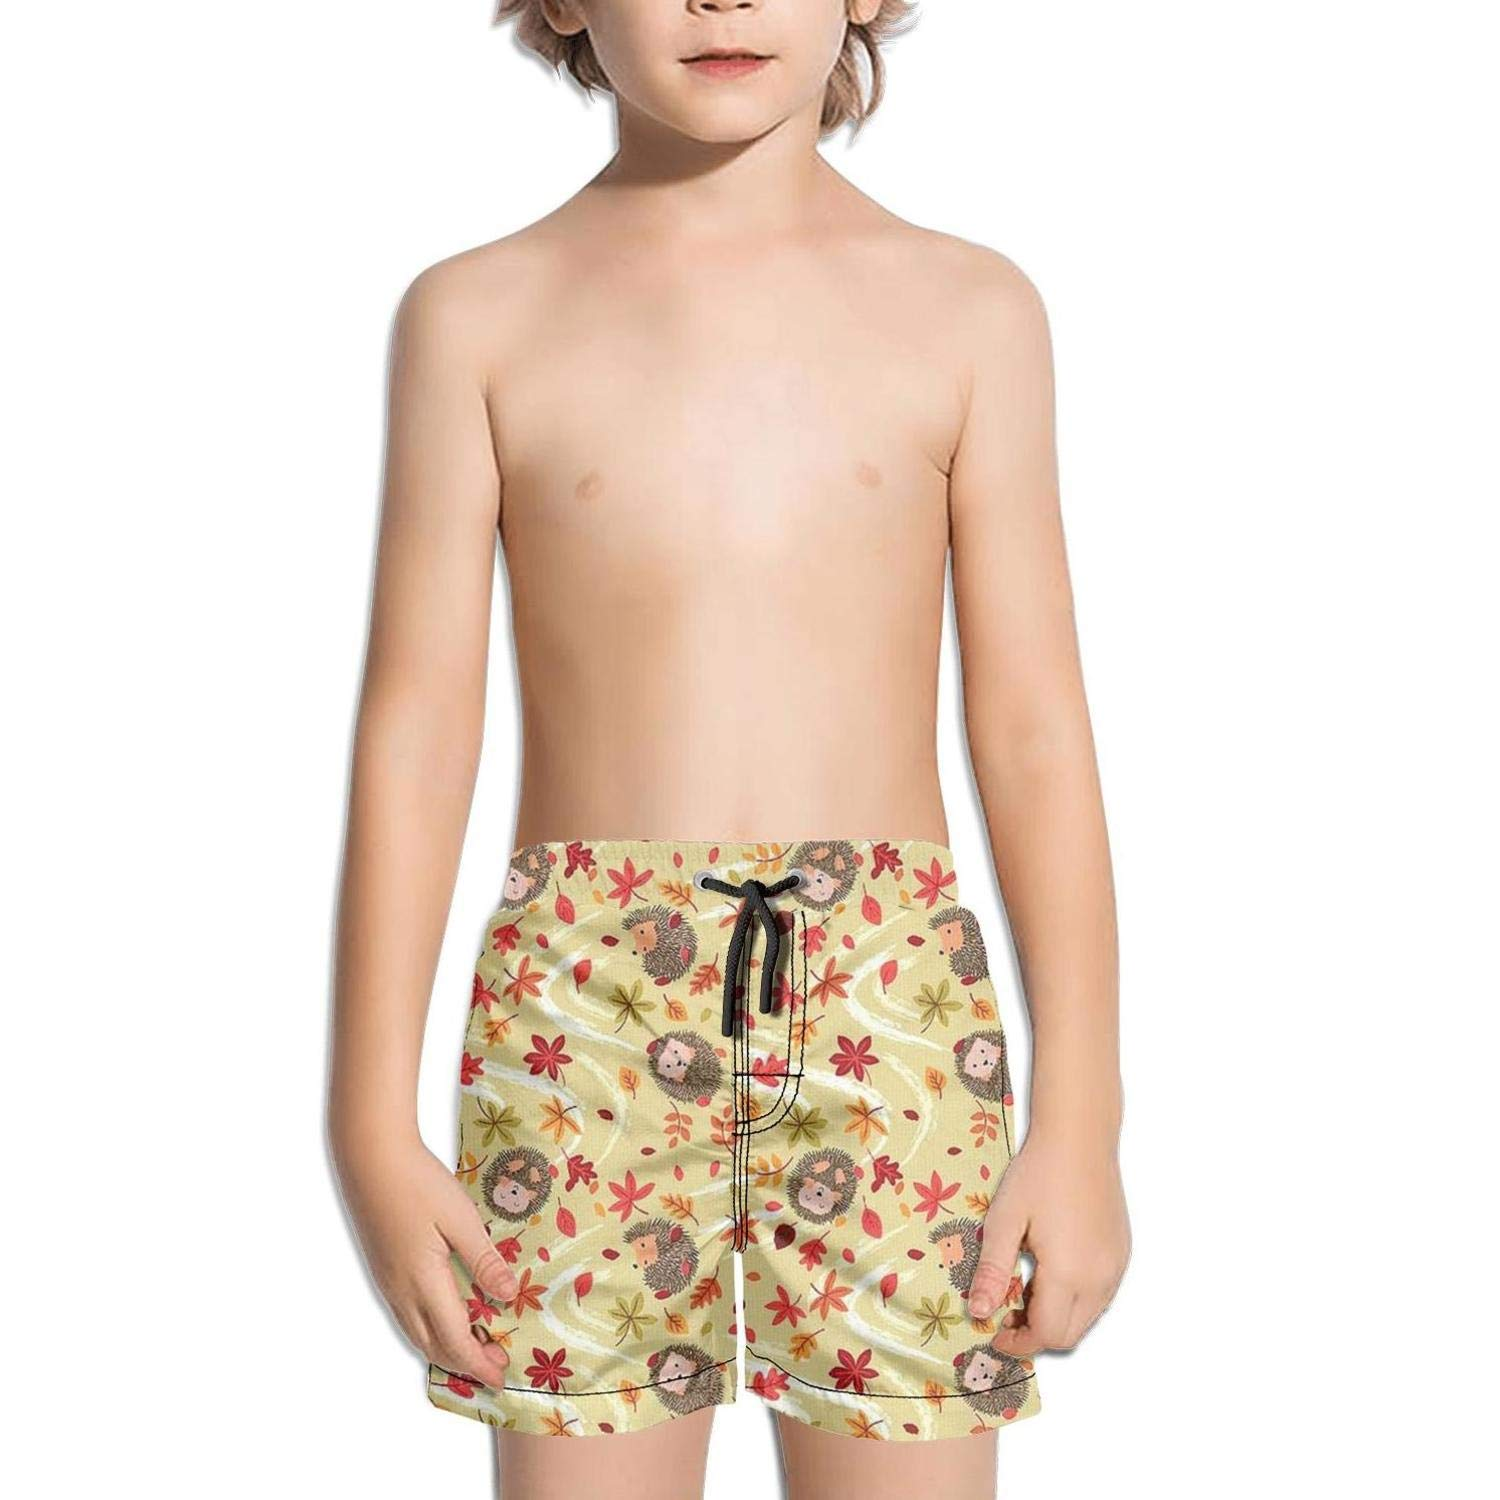 Lenard Hughes Boys Quick Dry Beach Shorts with Pockets Autumn Natural Blowing Leaves Hedgehog Swim Trunks for Summer